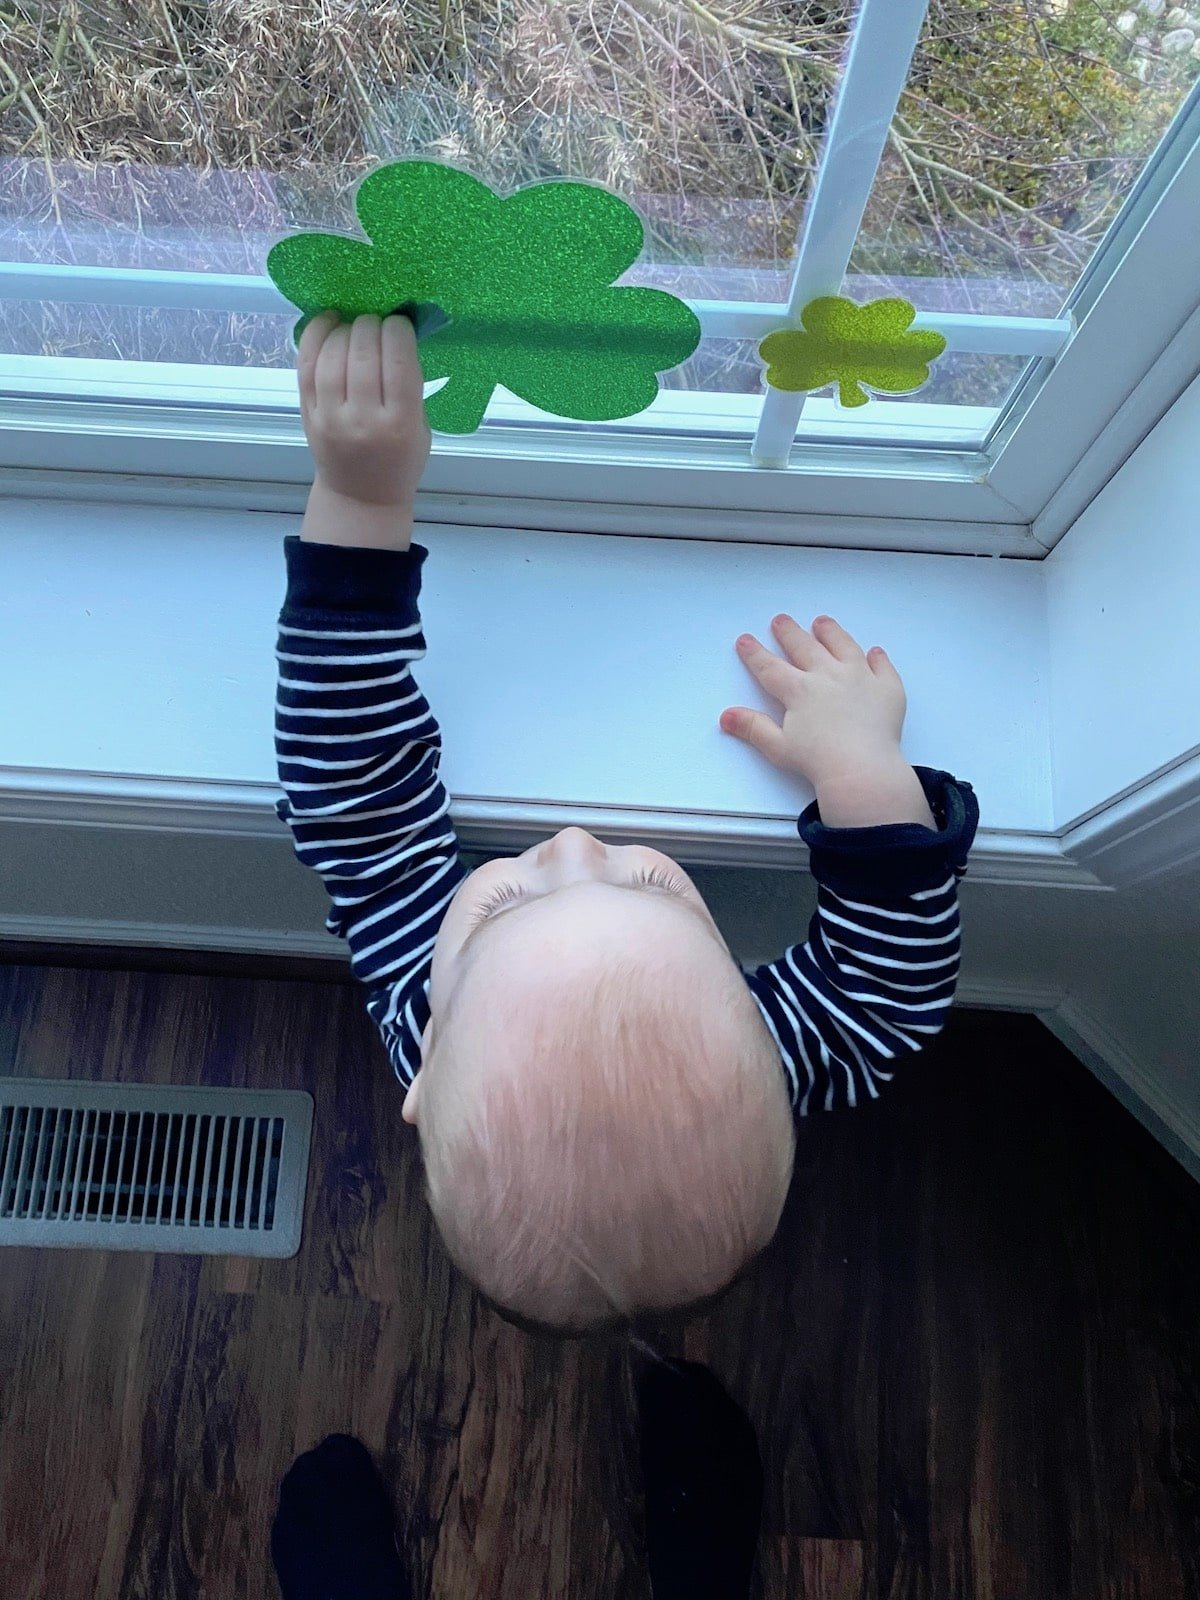 Simple Window Decorations For St Patrick's Day